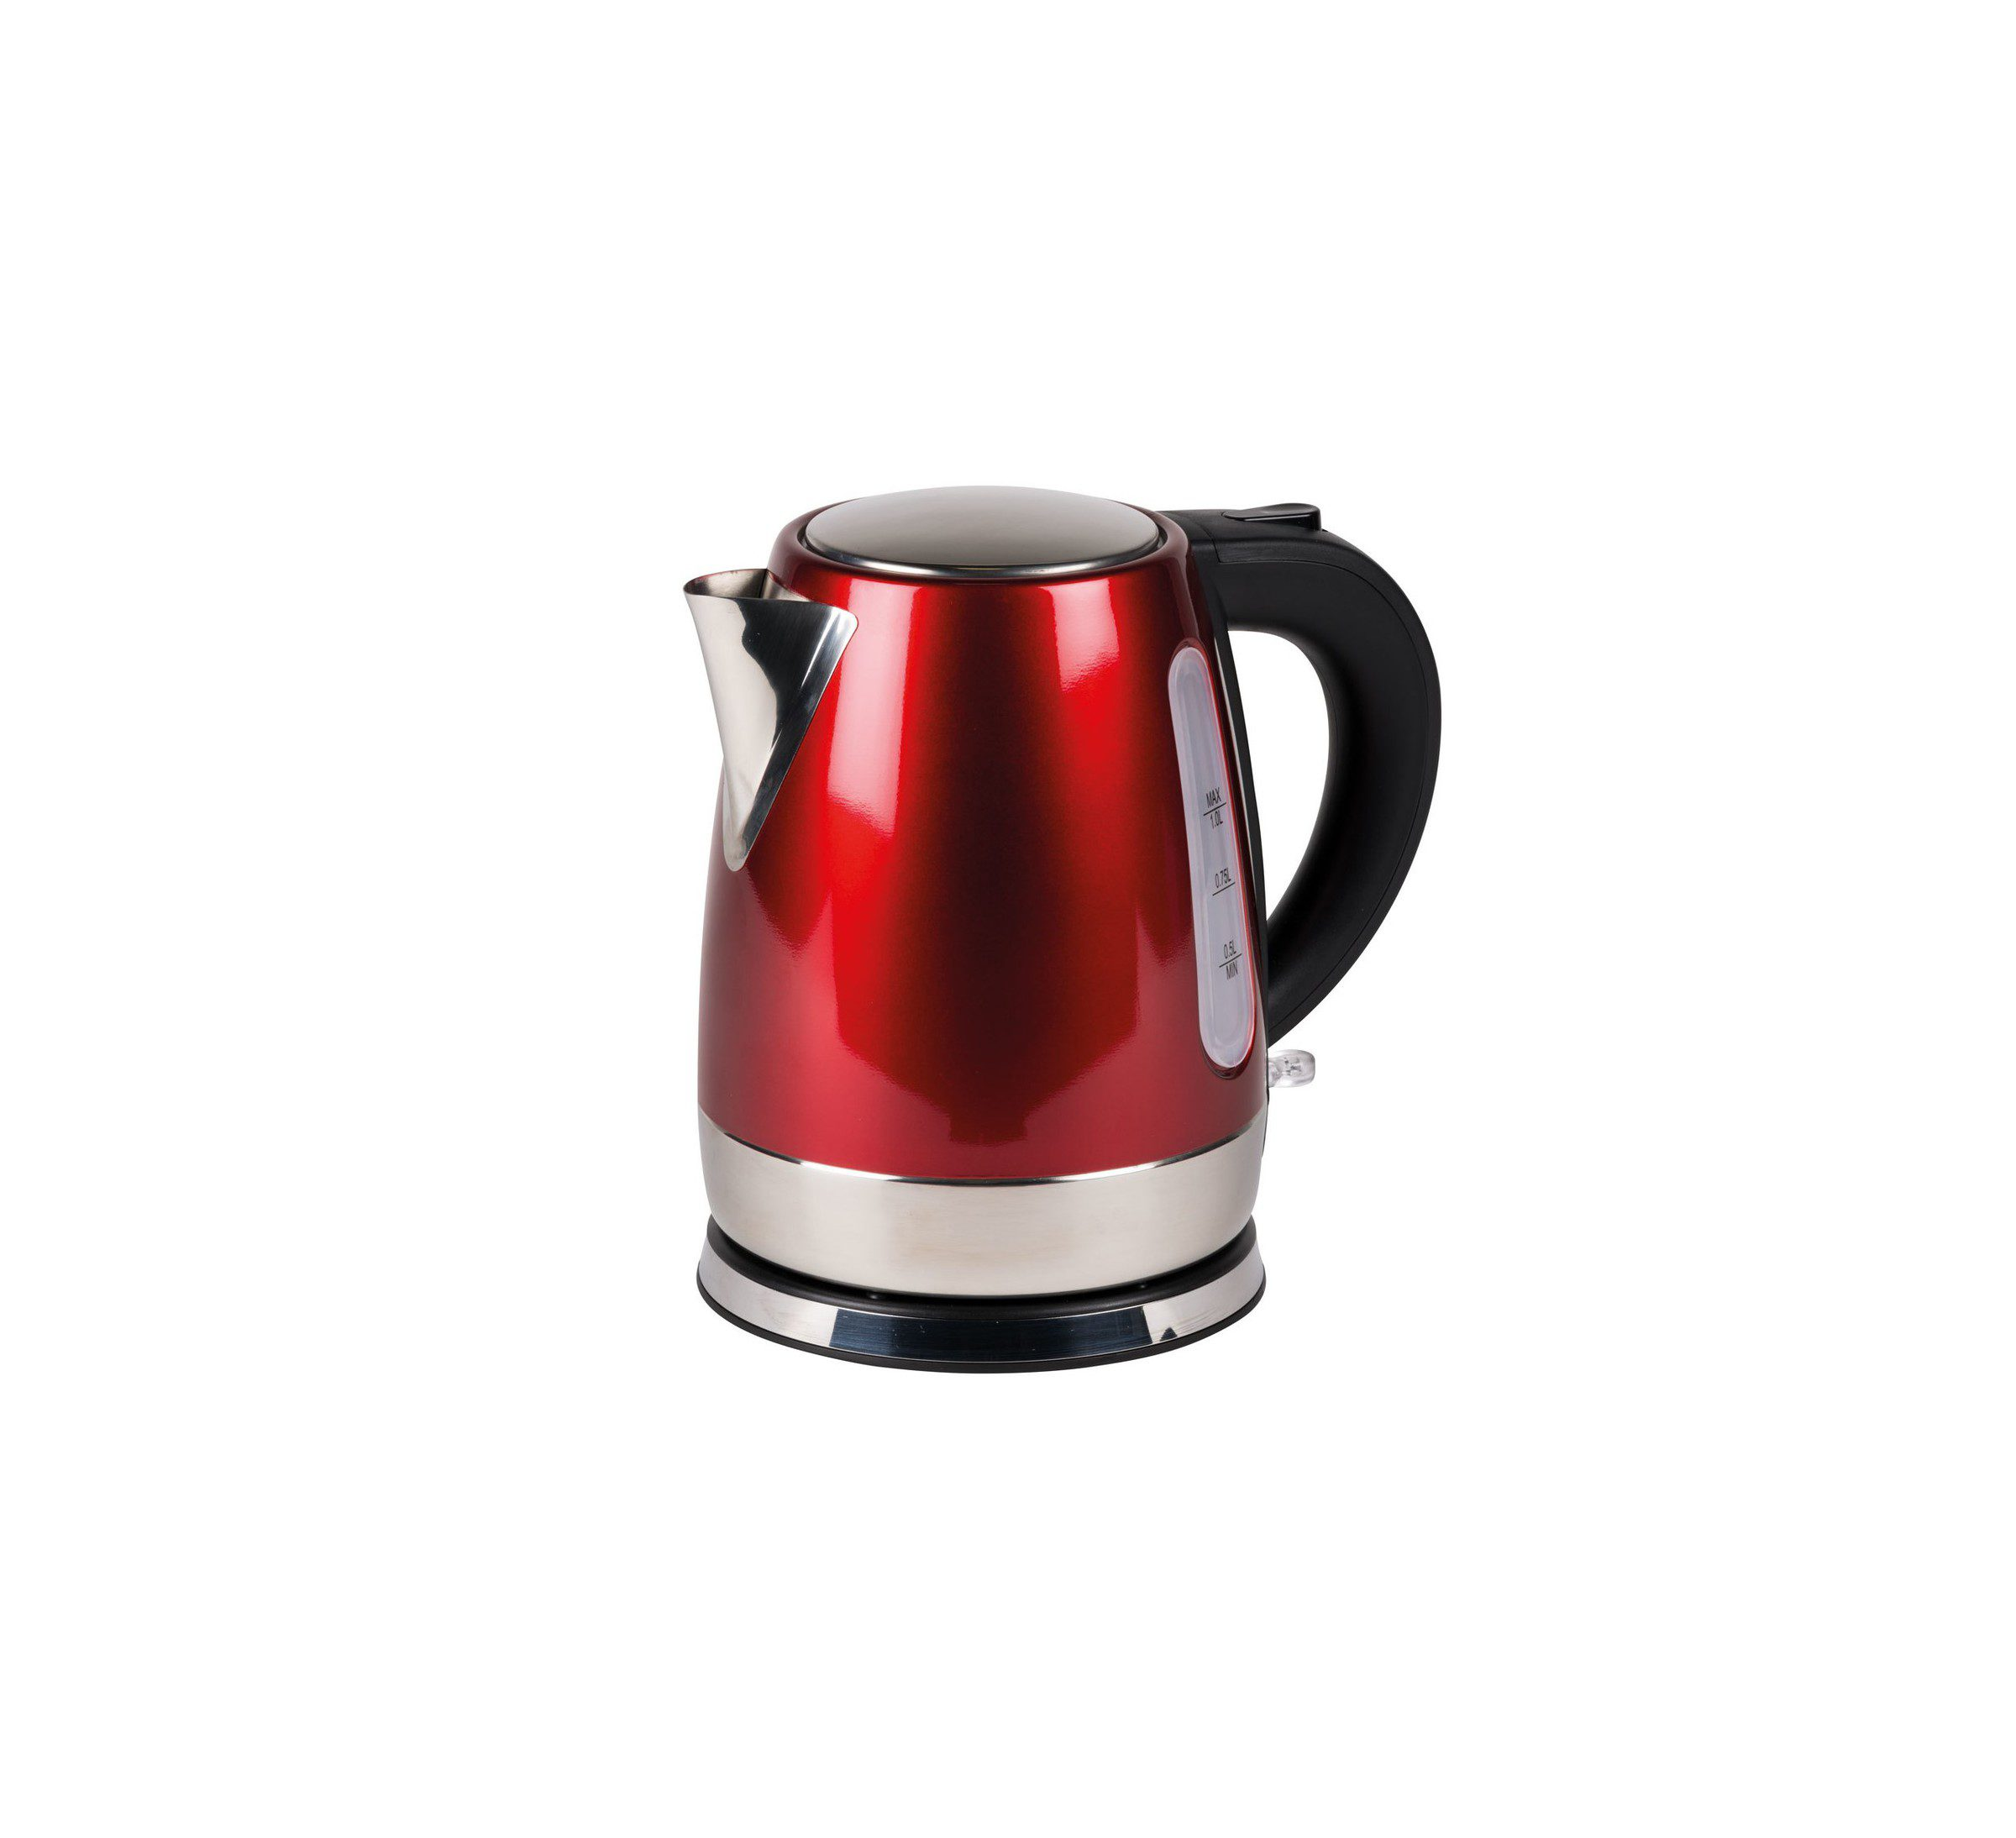 Kampa Cascade 1L red stainless steel kettle